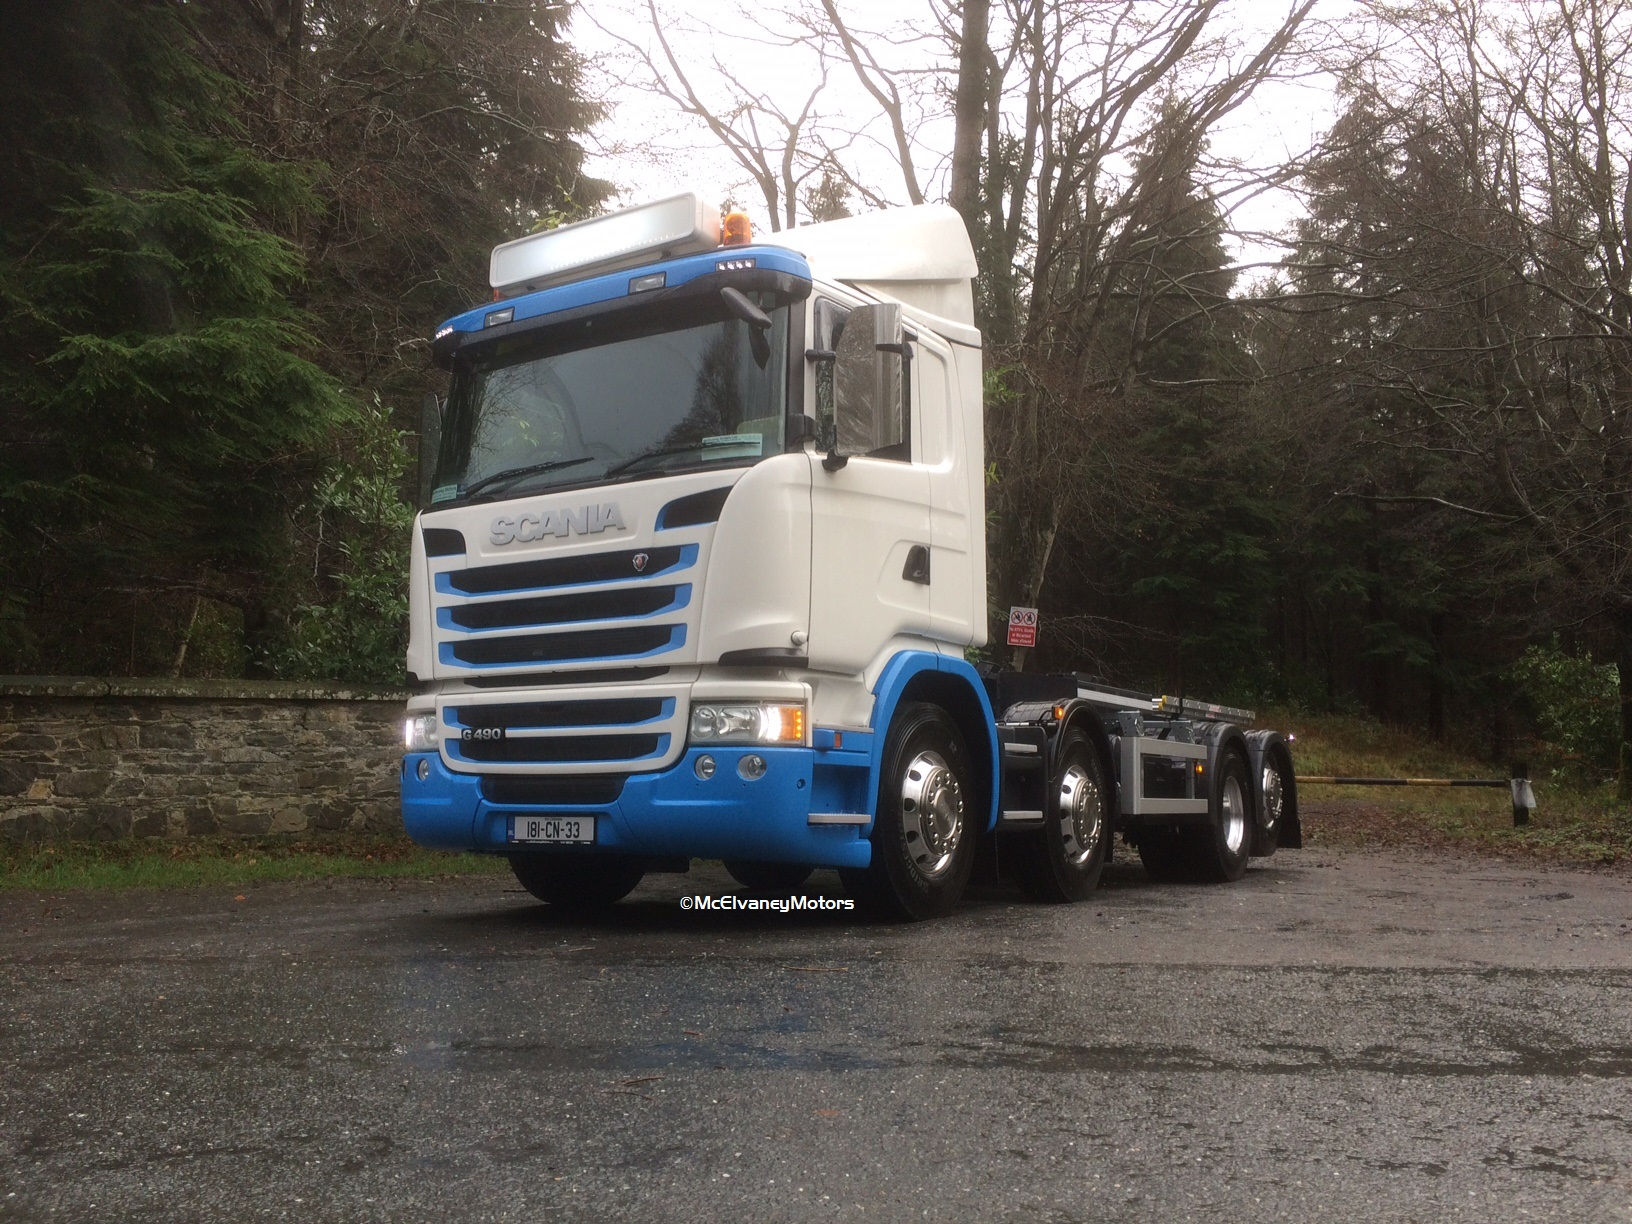 New Scania G490 for Wilton Waste